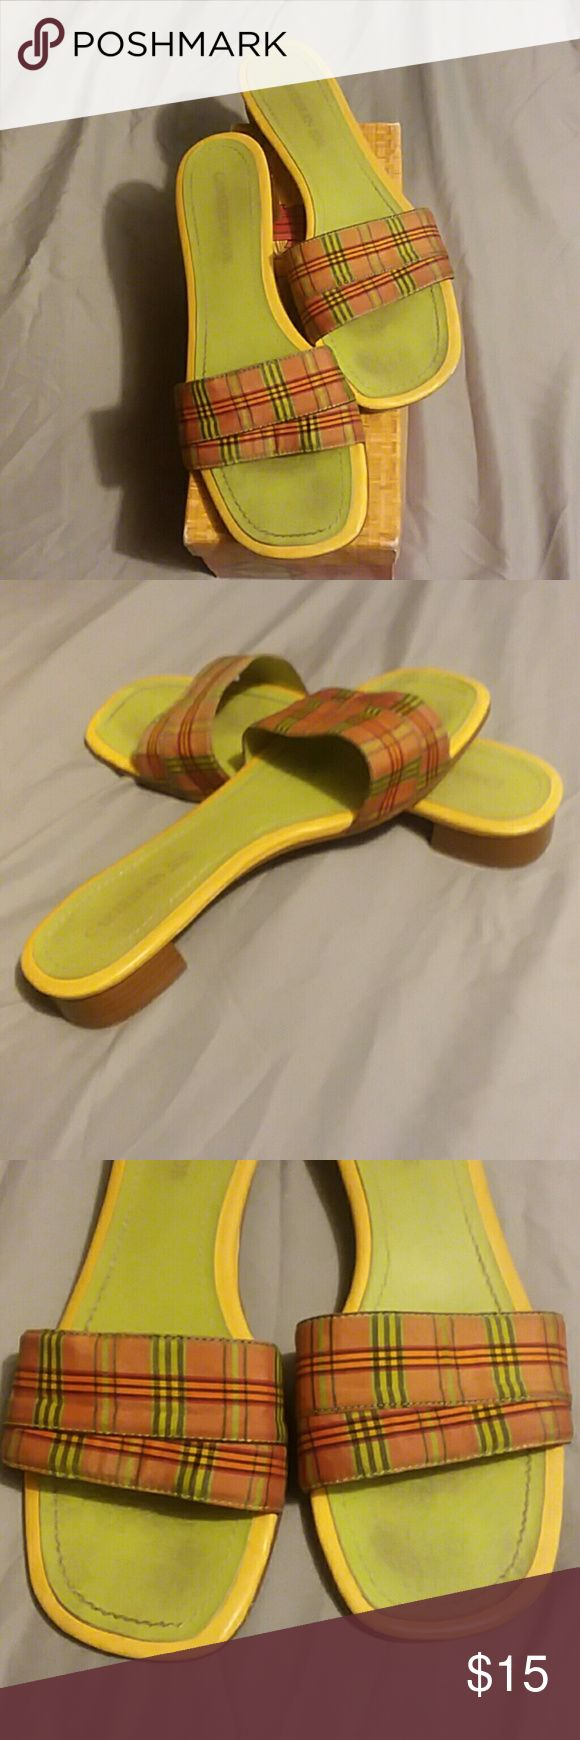 Caribbean Joe slides (10) Cute green and orange summer slides, worn a few times, you need these in your closet. Caribbean Joe  Shoes Sandals